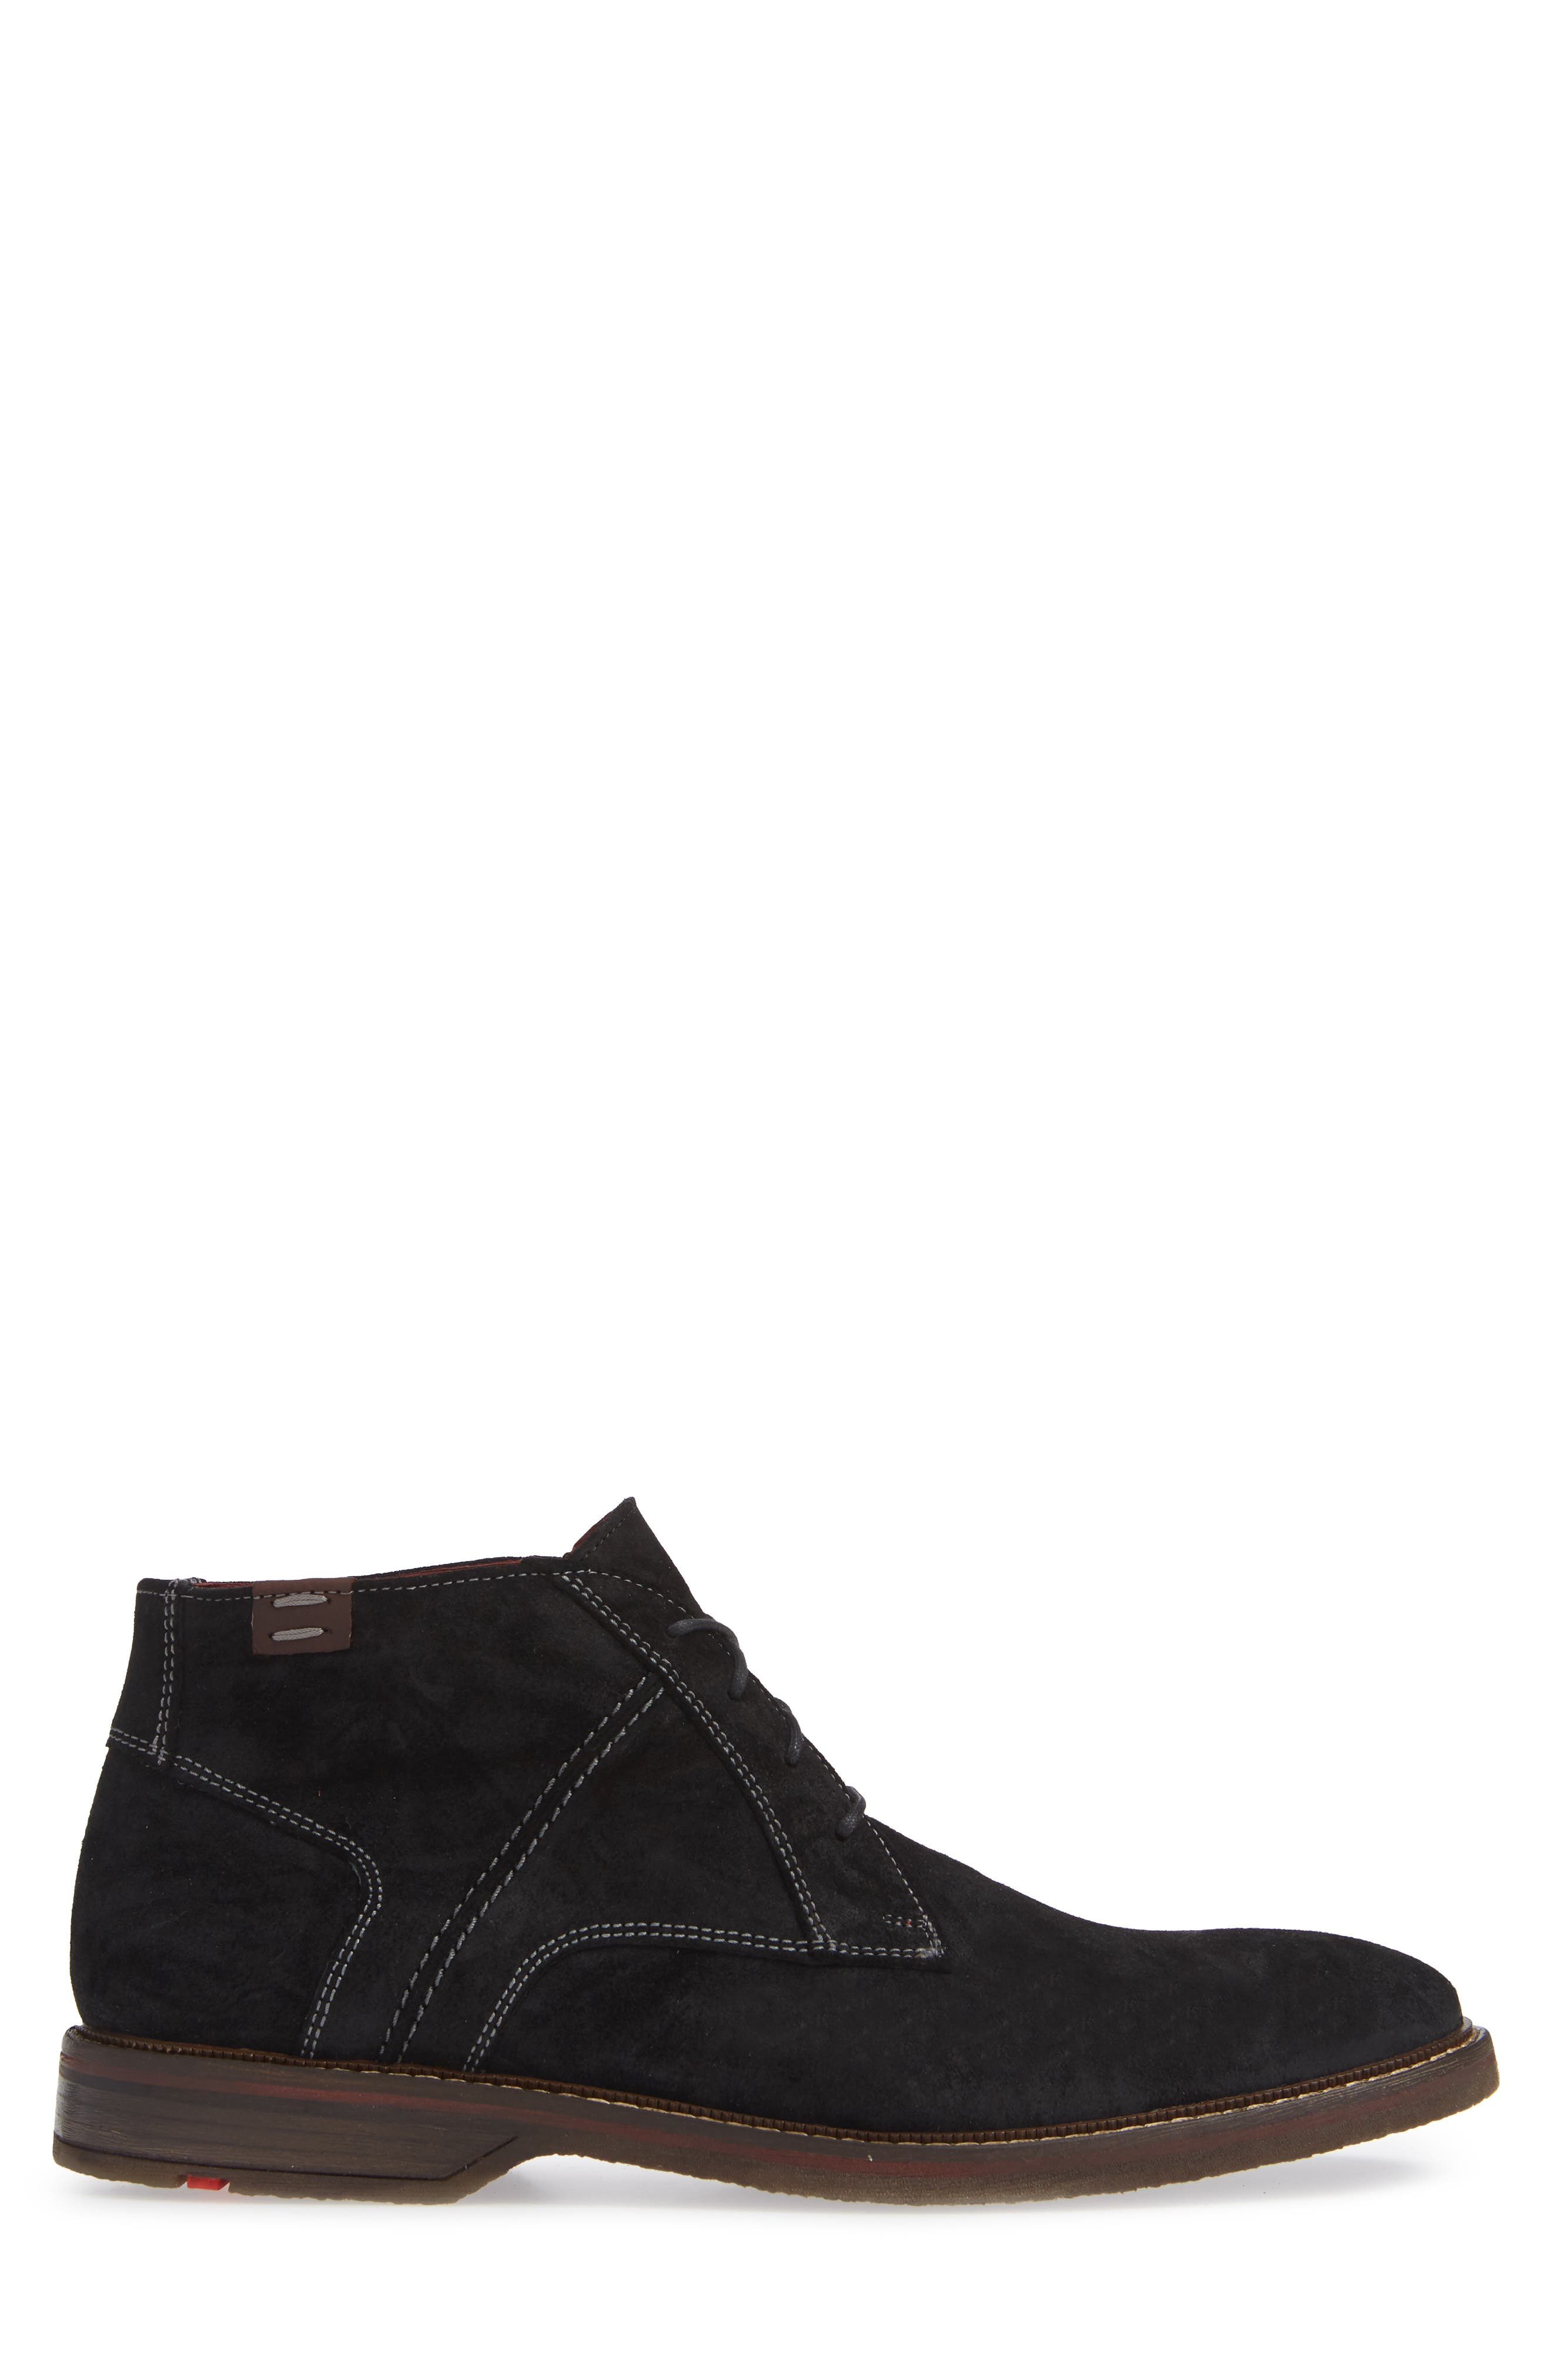 Dalbert Chukka Boot,                             Alternate thumbnail 3, color,                             BLACK/ KENIA SUEDE